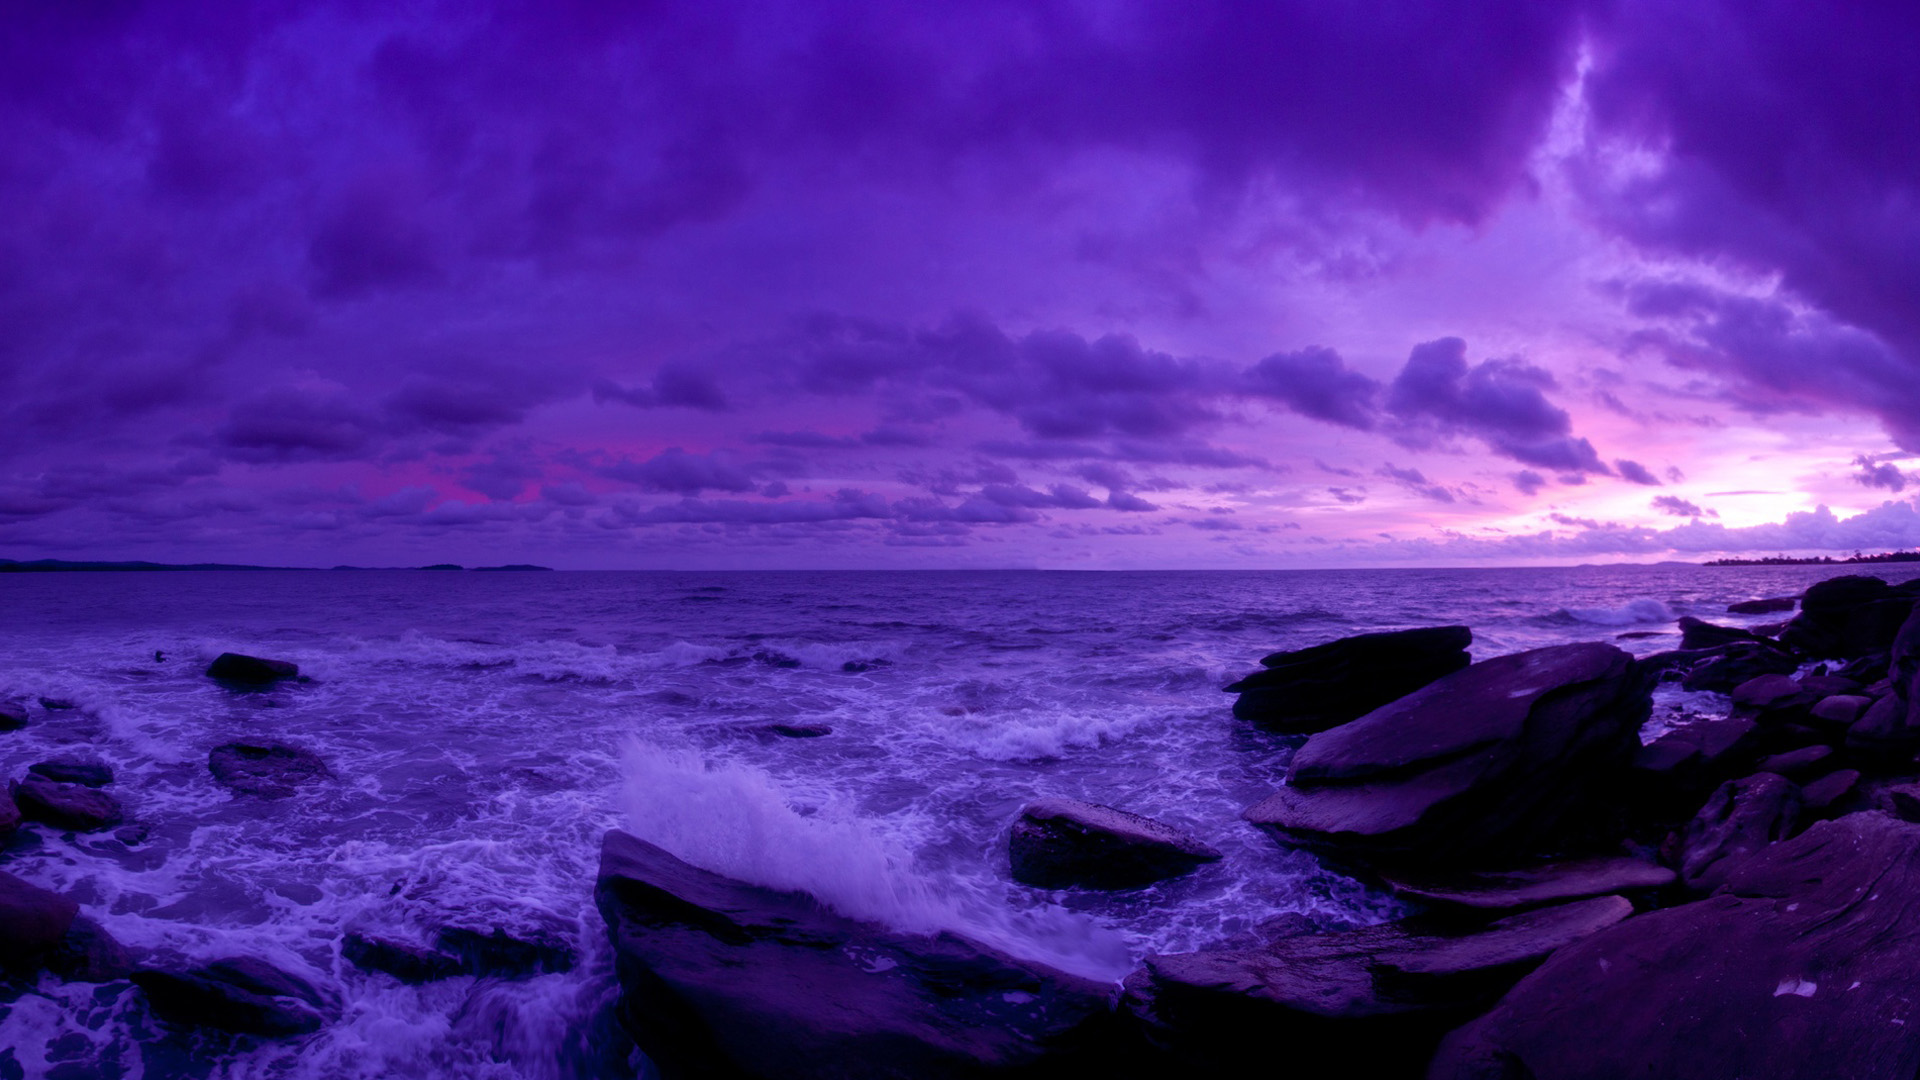 Purple sunset Wallpapers, Green Backgrounds, Pictures and images